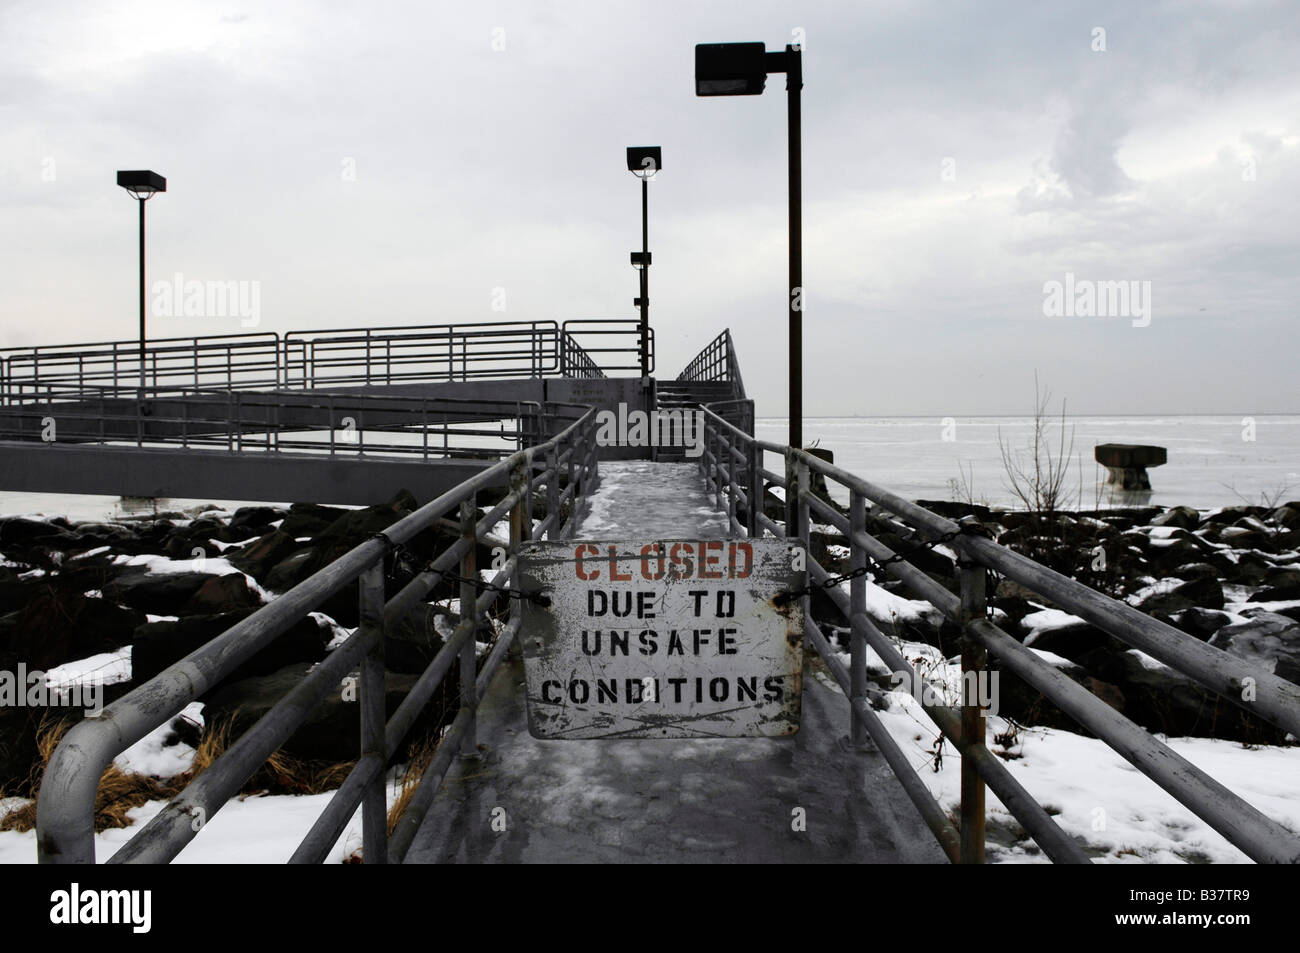 pier leading to lake erie in cleveland,ohio, usa - Stock Image